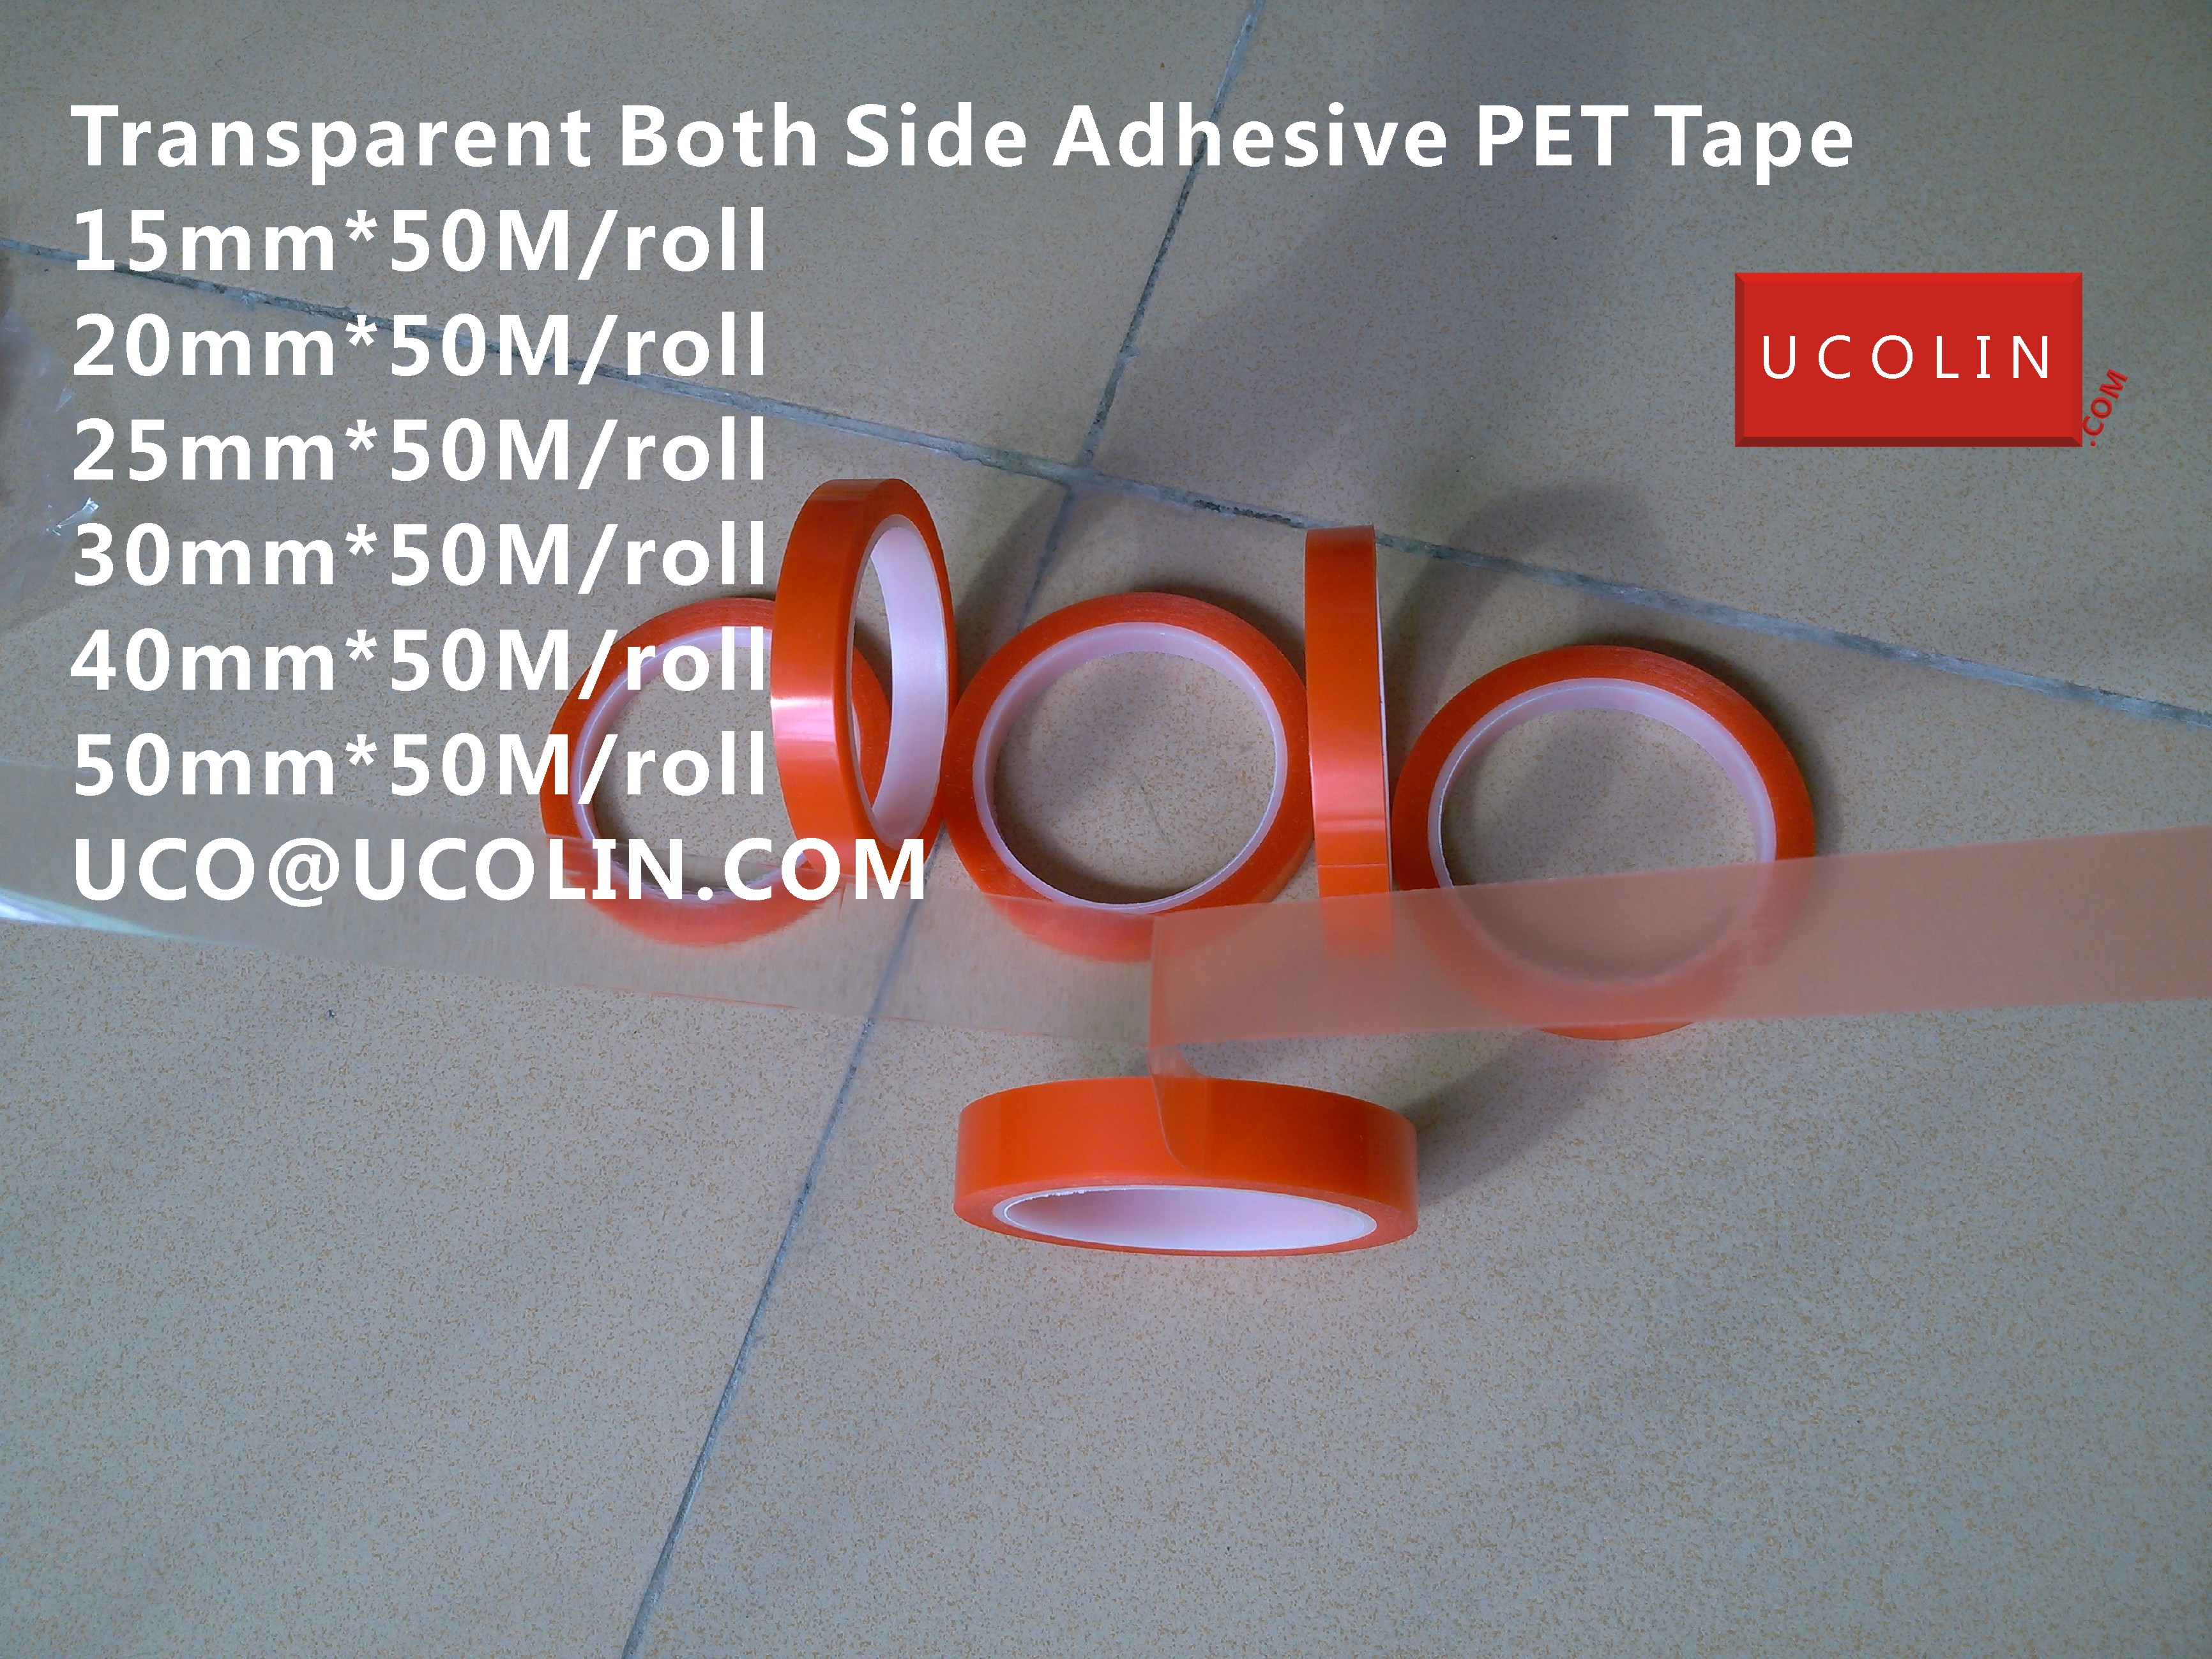 Transparent Both Side Adhesive PET Tape